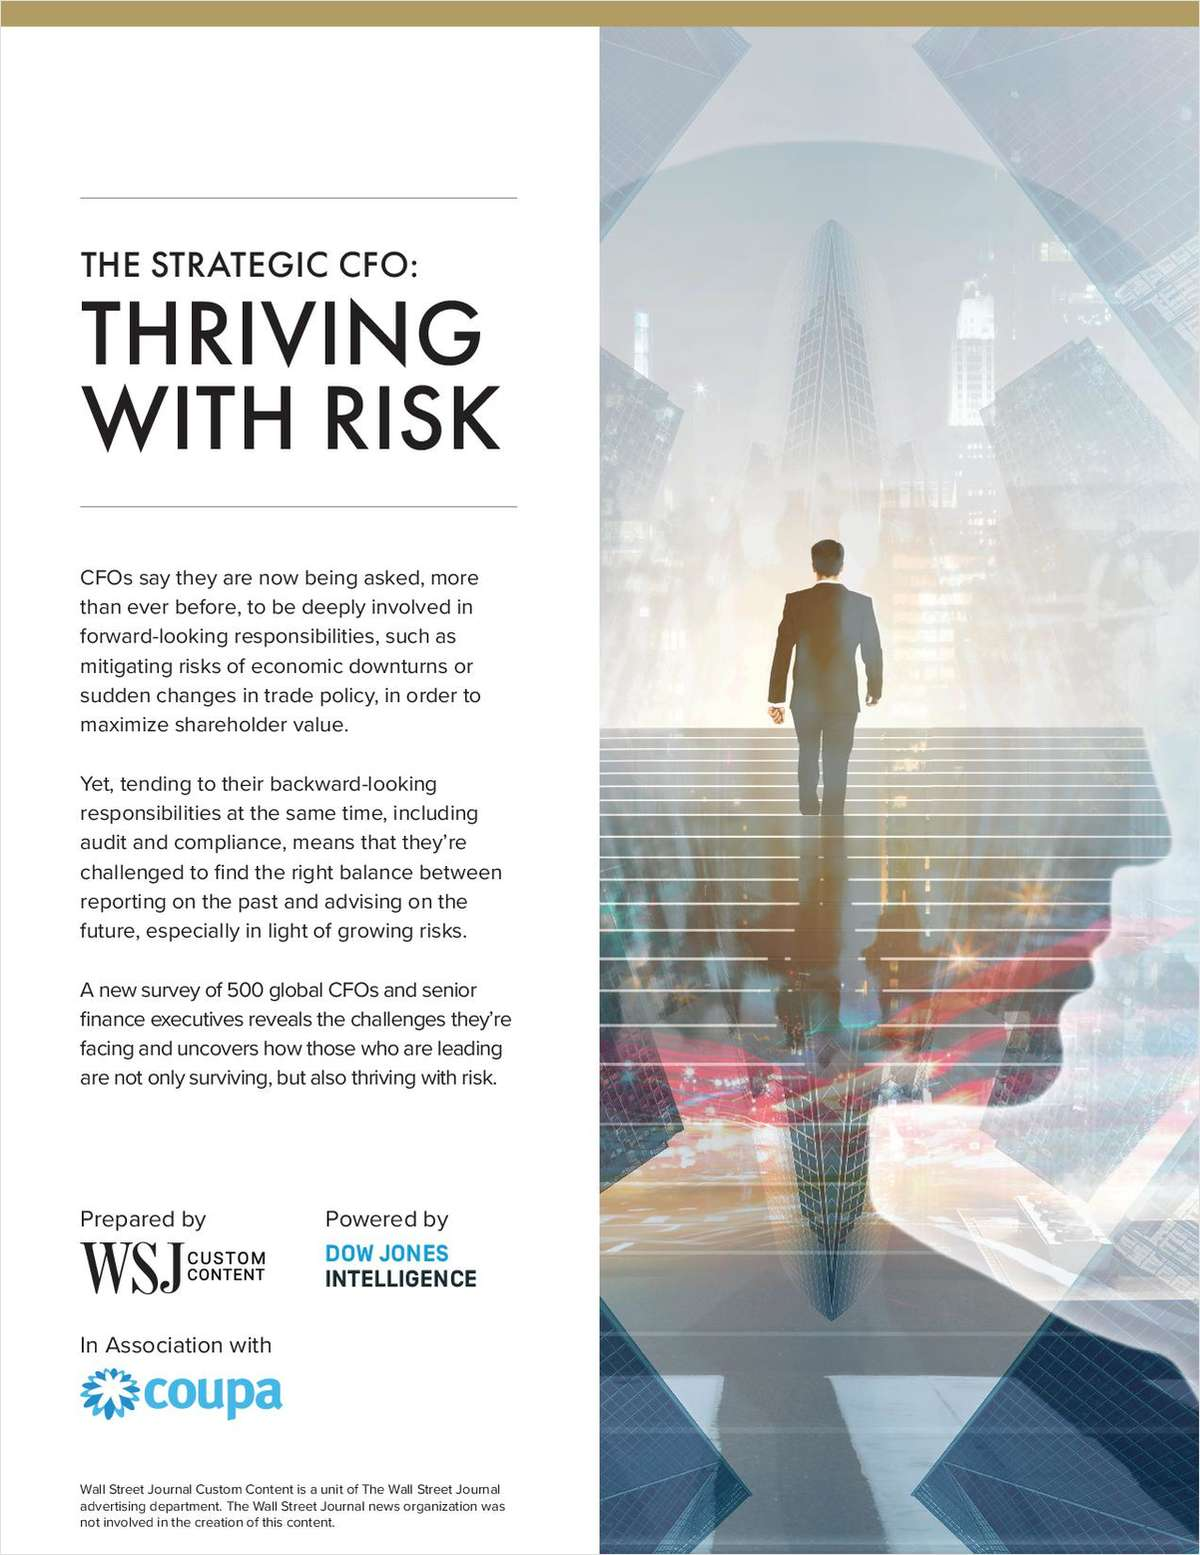 The Strategic CFO: Thriving With Risk